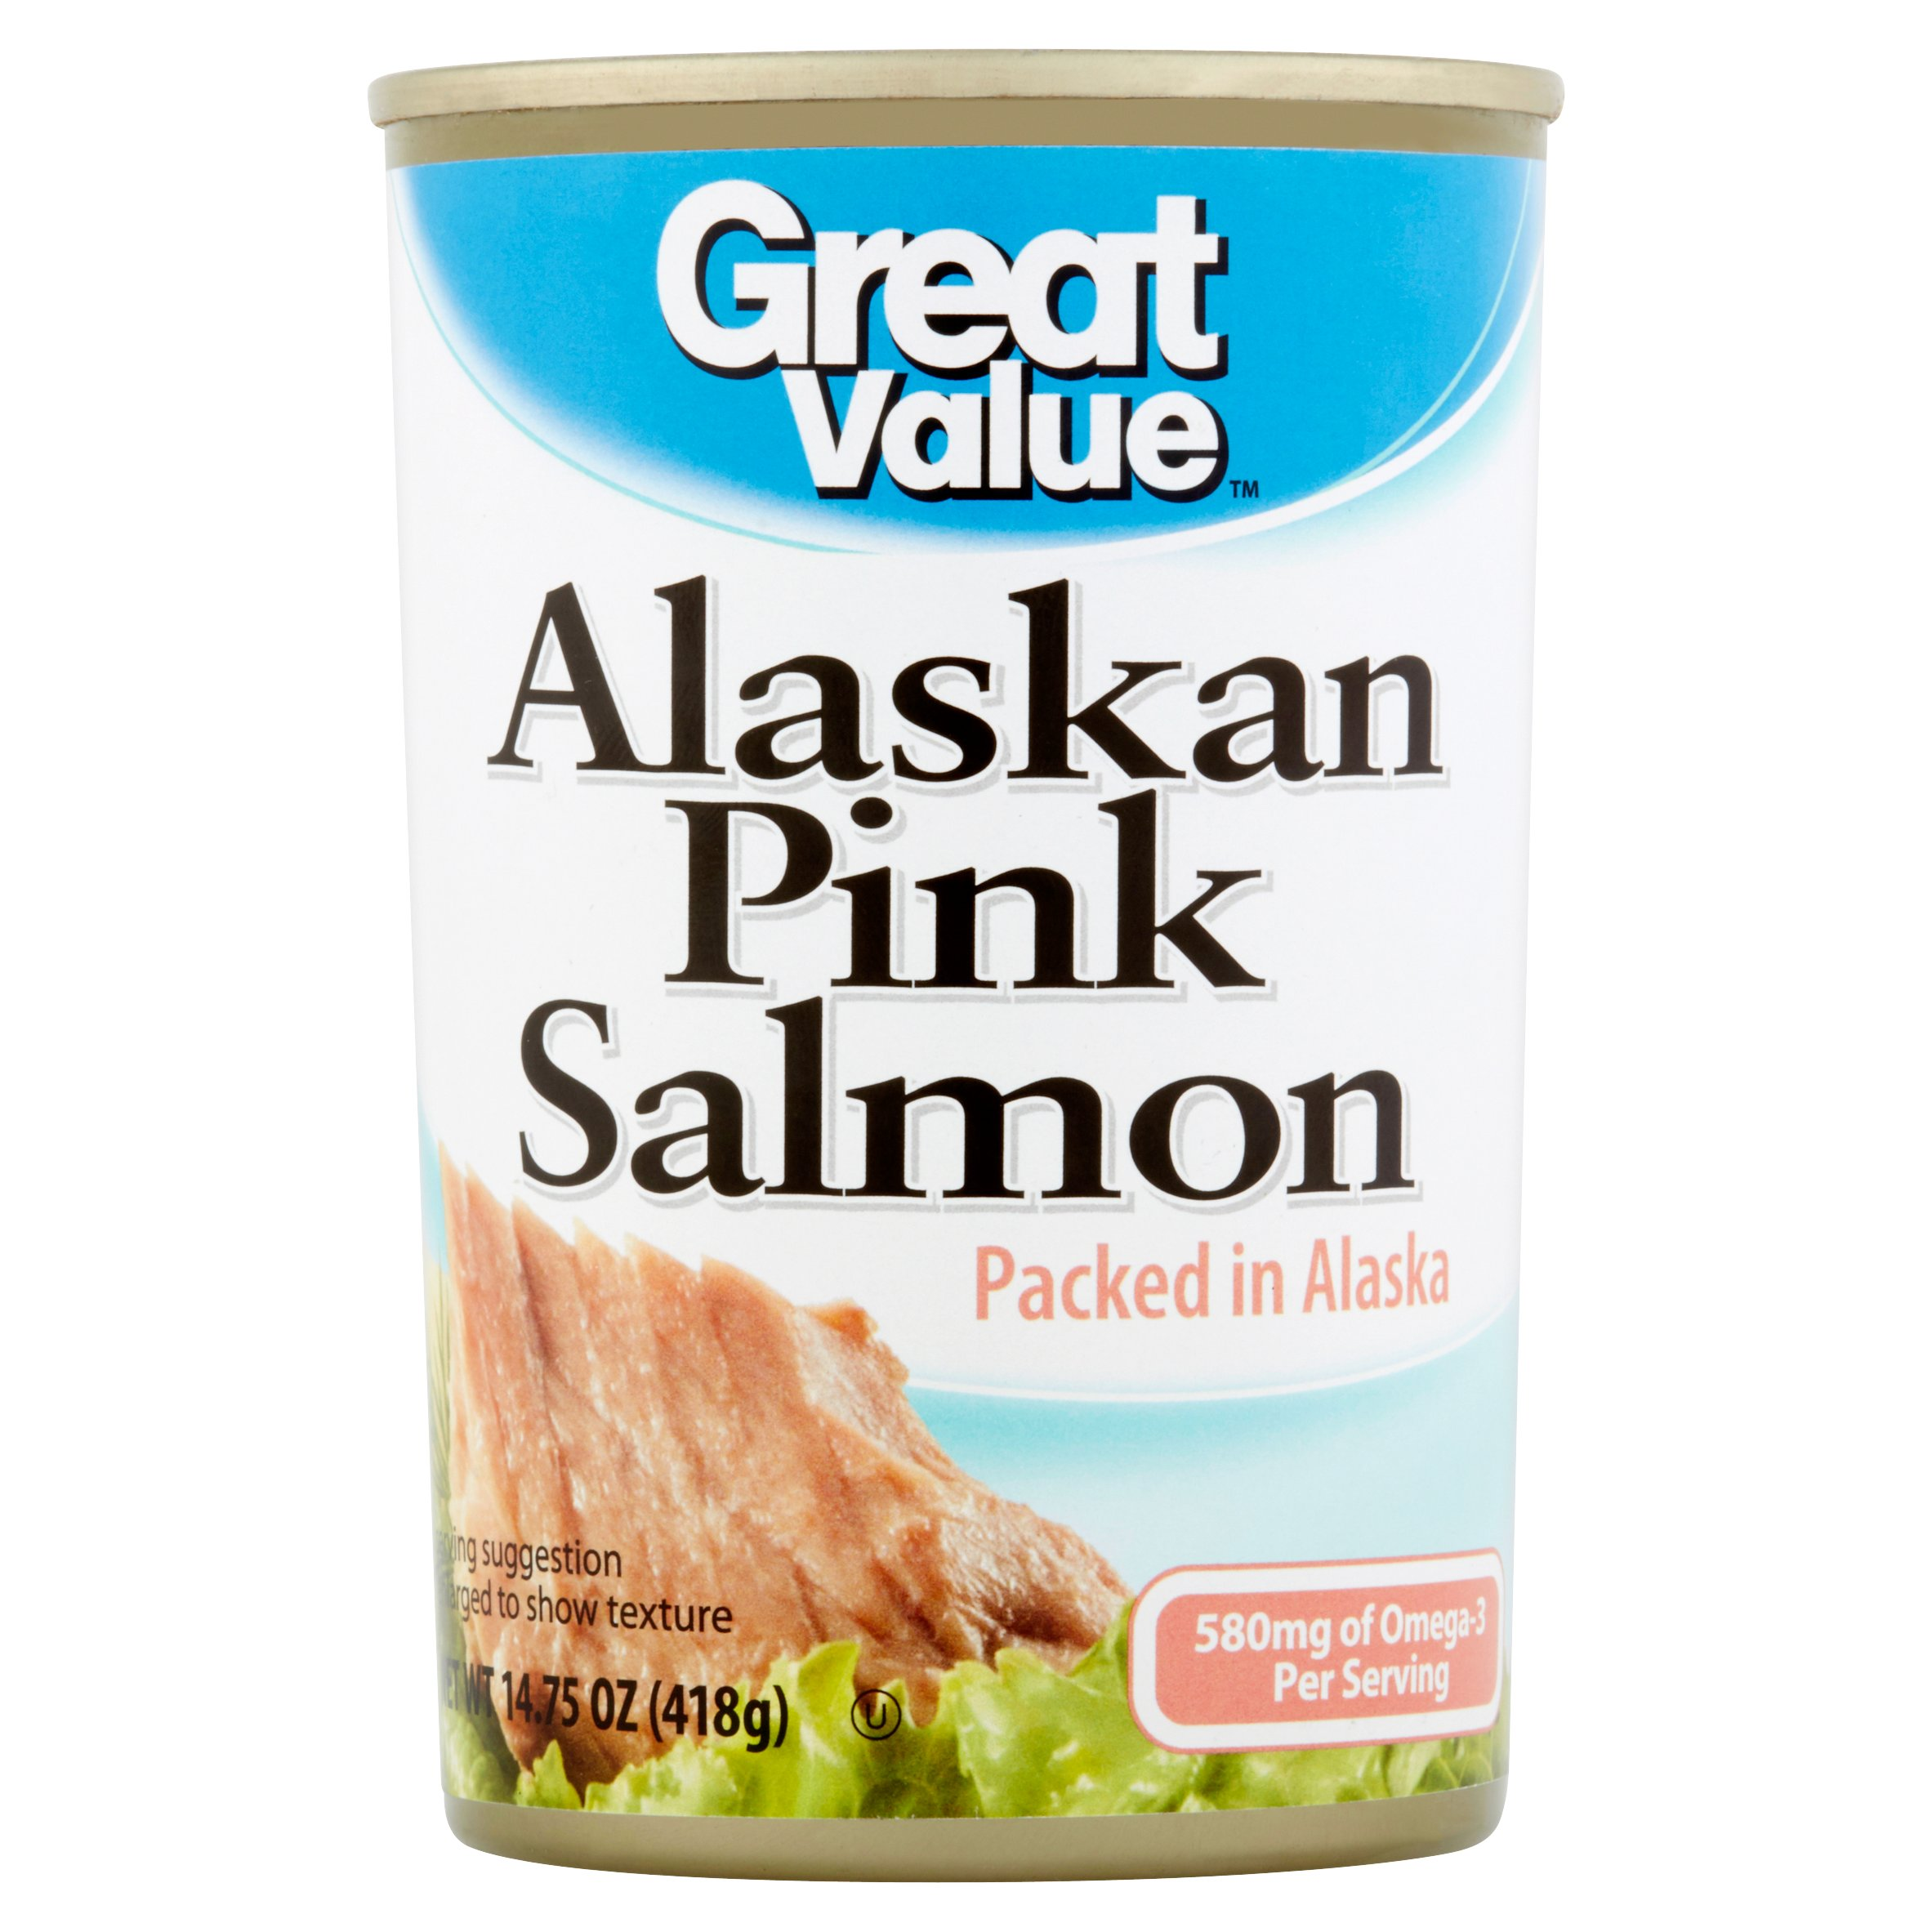 Great Value Alaskan Pink Salmon, 14.75 oz